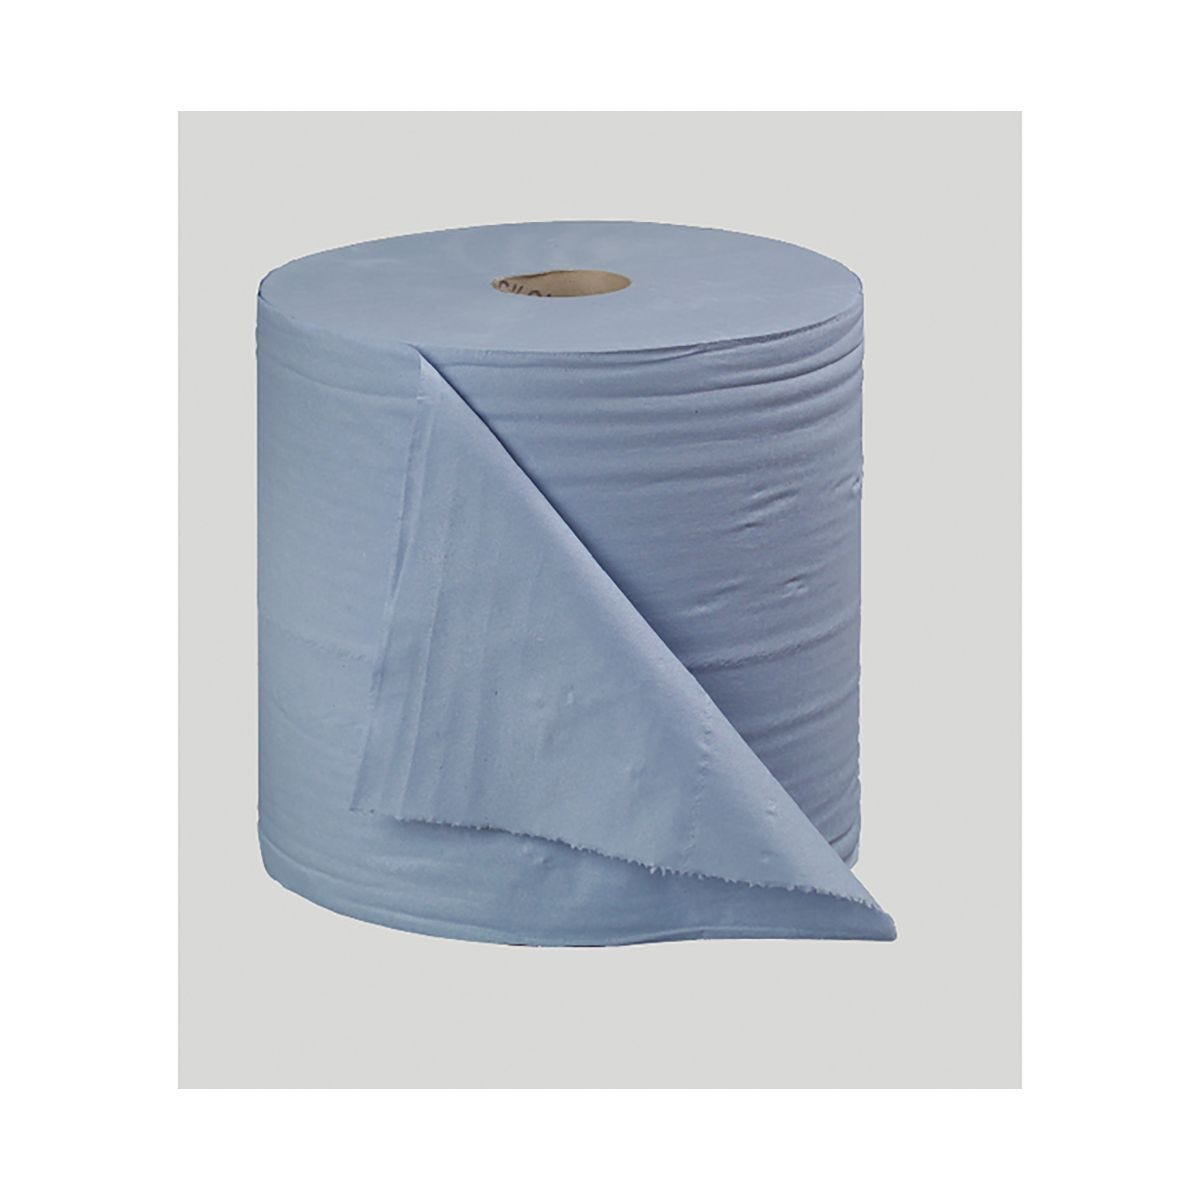 2Work Blue Bumper 2-Ply Paper Roll 270mm x 400m Pack of 2